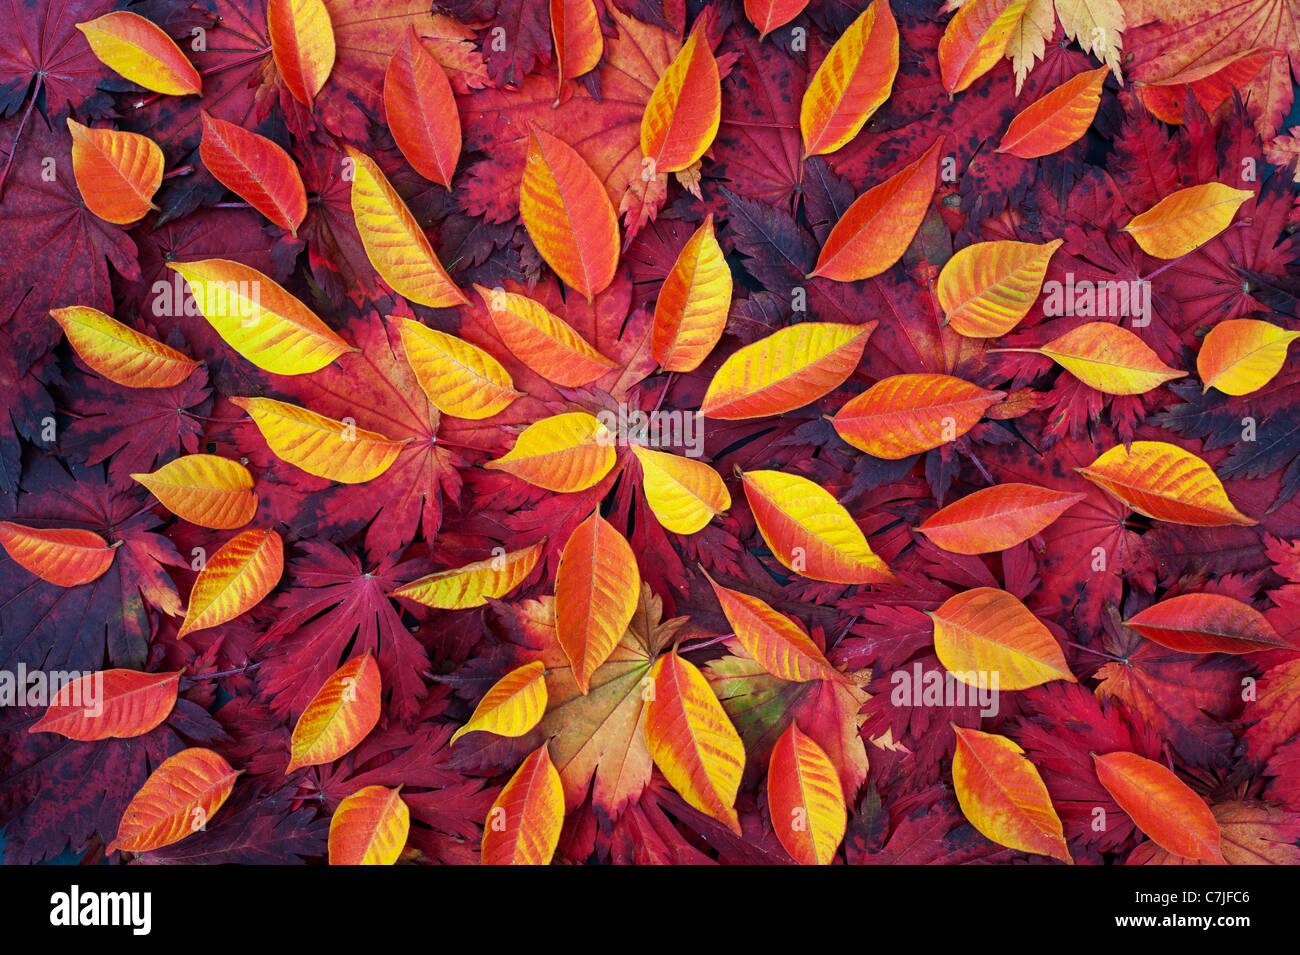 Autumn leaf pattern. Japanese Maple and various other leaves changing colour in autumn. Stock Photo